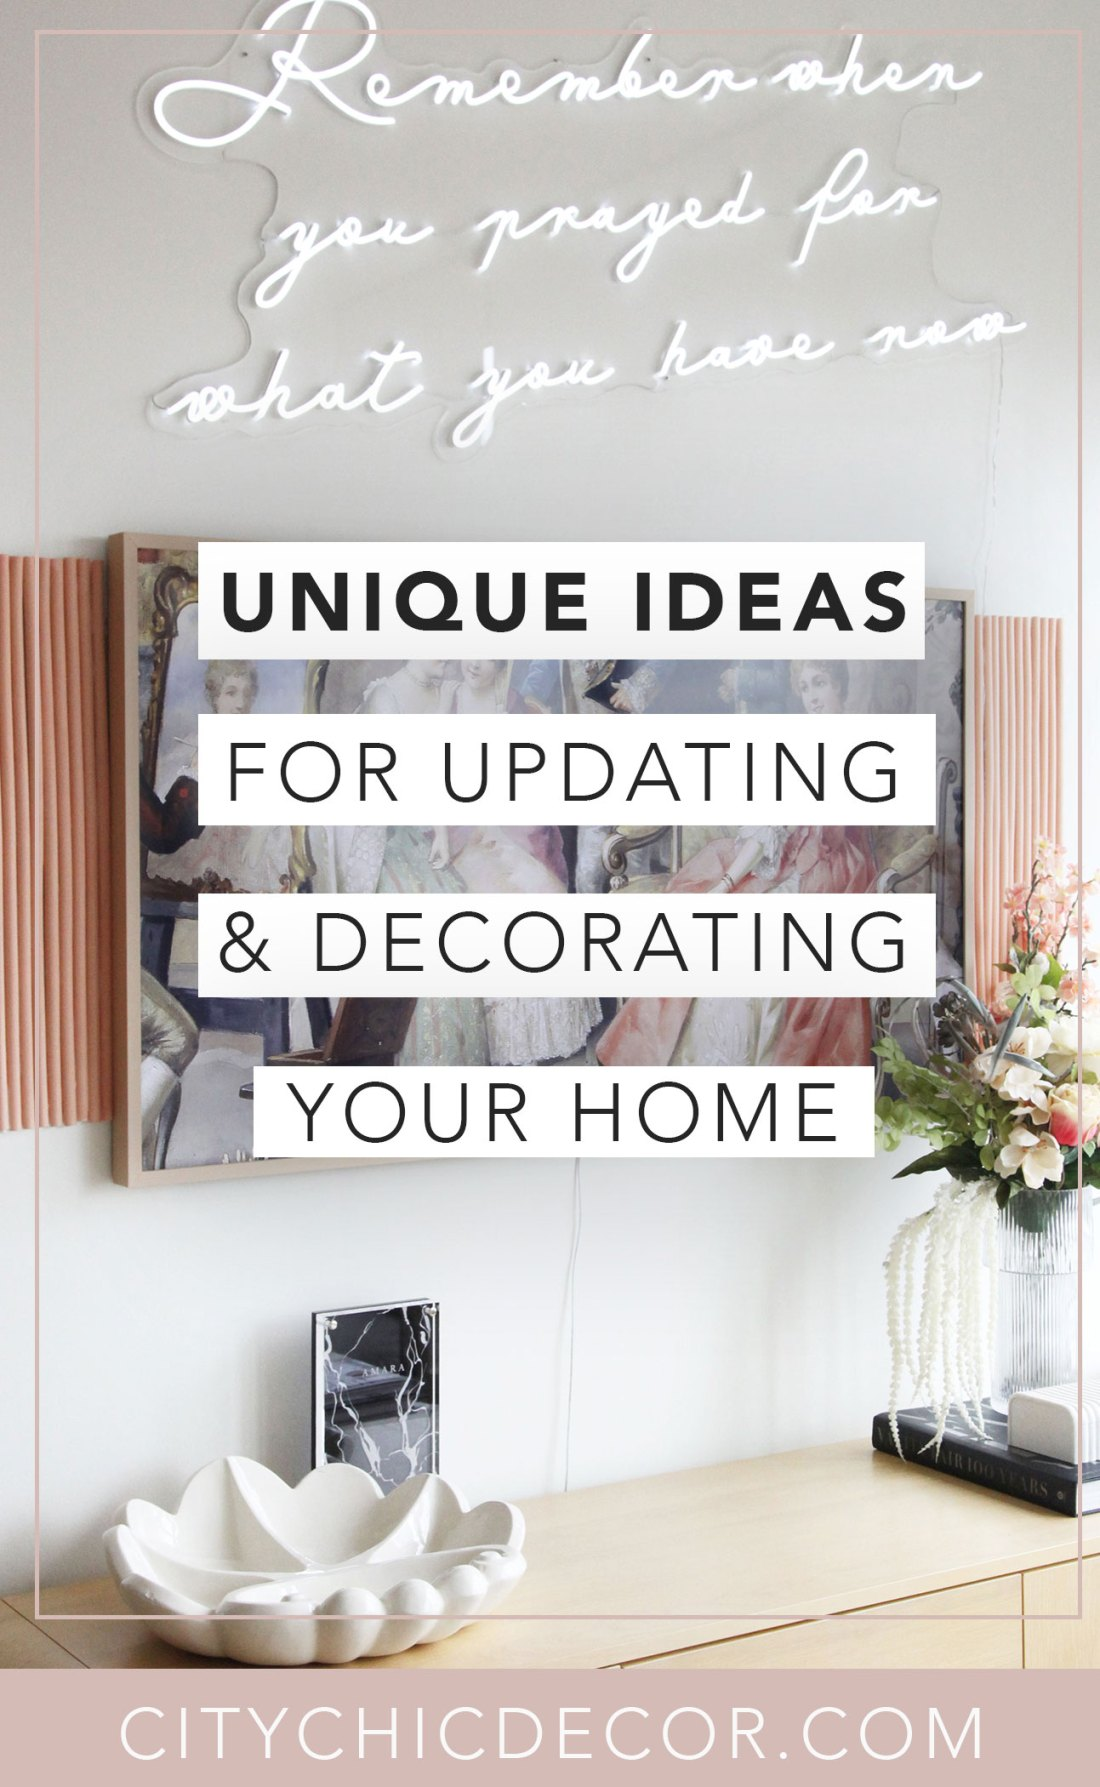 Struggle to find unique decor ideas for your apartment or studio? Decorating your rental home, on a budget, can be super easy with these helpful tips. Your rental will stand out from the rest and will look so chic and unique! These tips will also work for small apartments. #studioapartmentideas #studioapartmentdecorating #rentaldecorating #rentalapartmentdecorating #uniquedecorideas